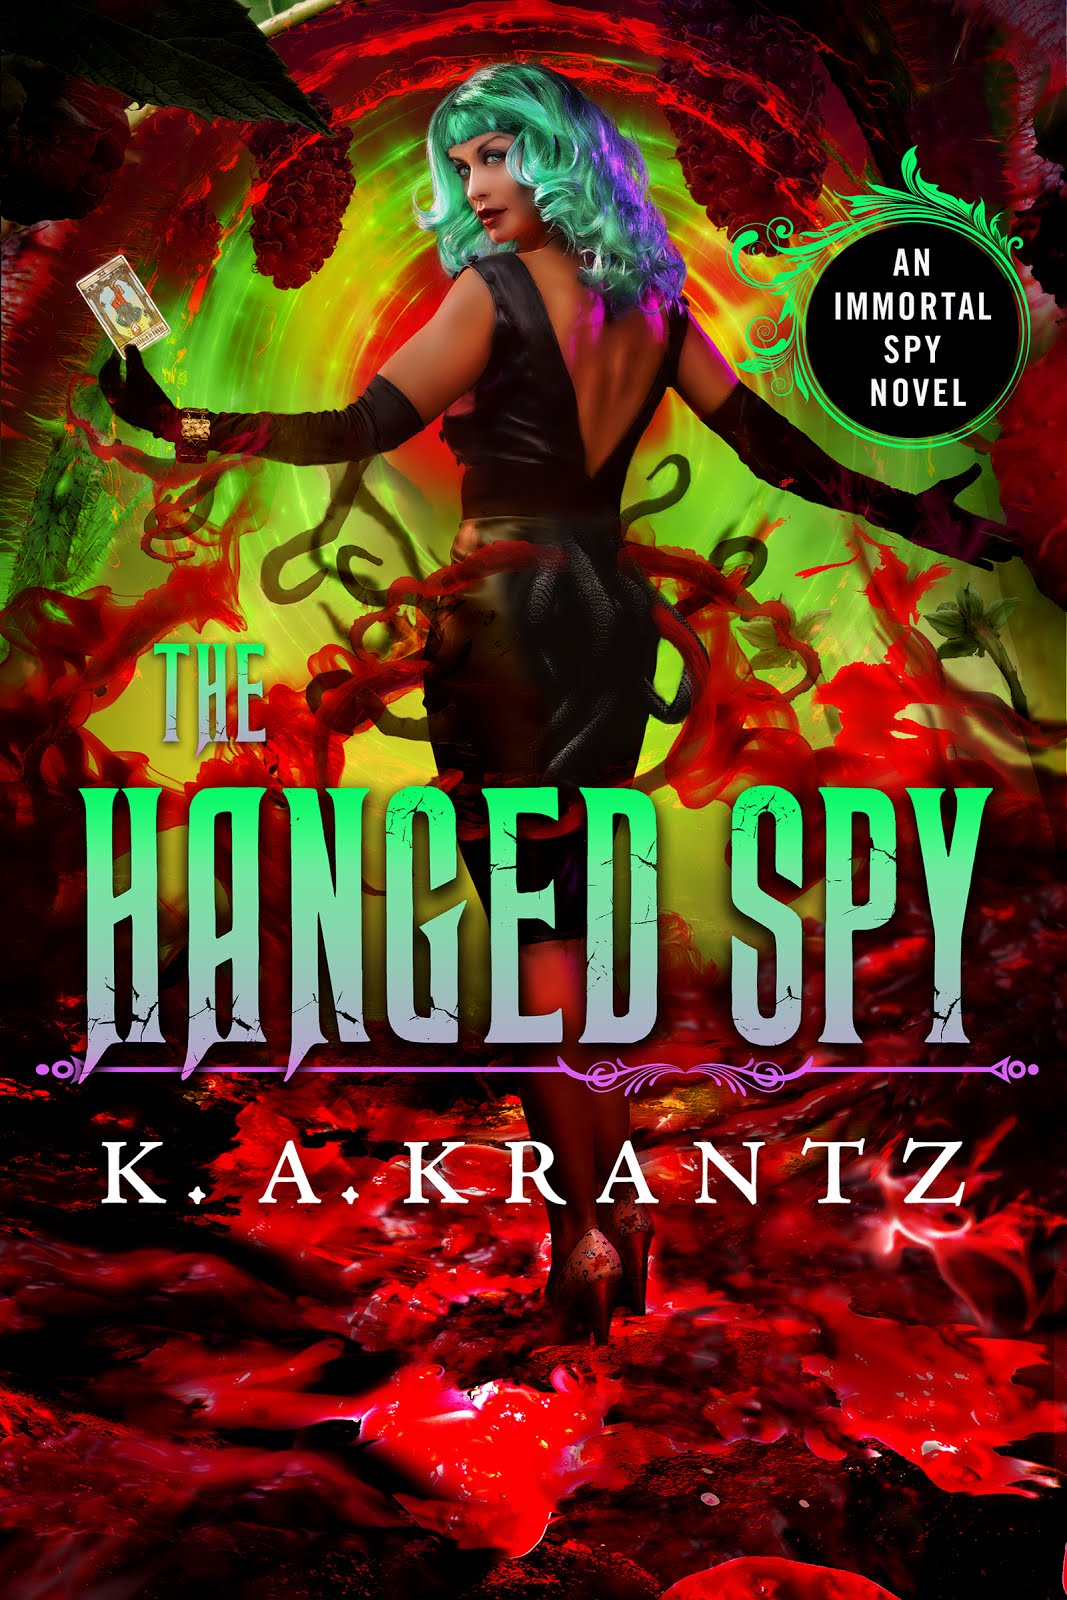 The Hanged Spy